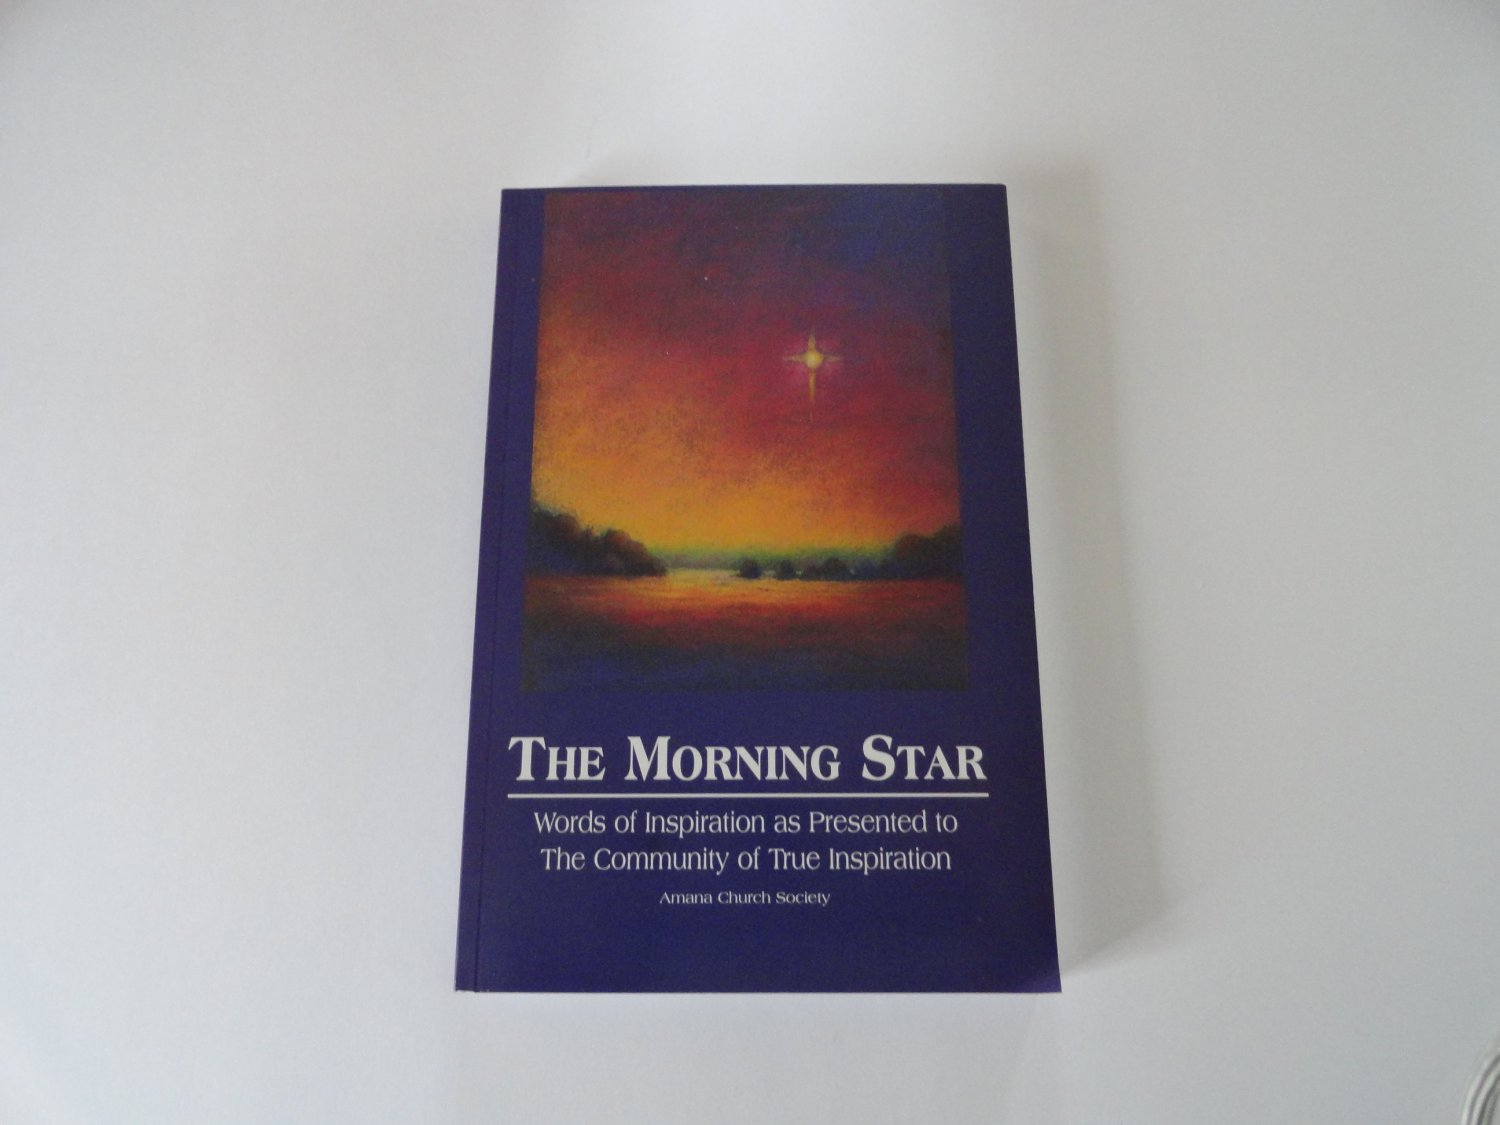 The Morning Star: Words of Inspiration as Presented to The Community of True Inspiration